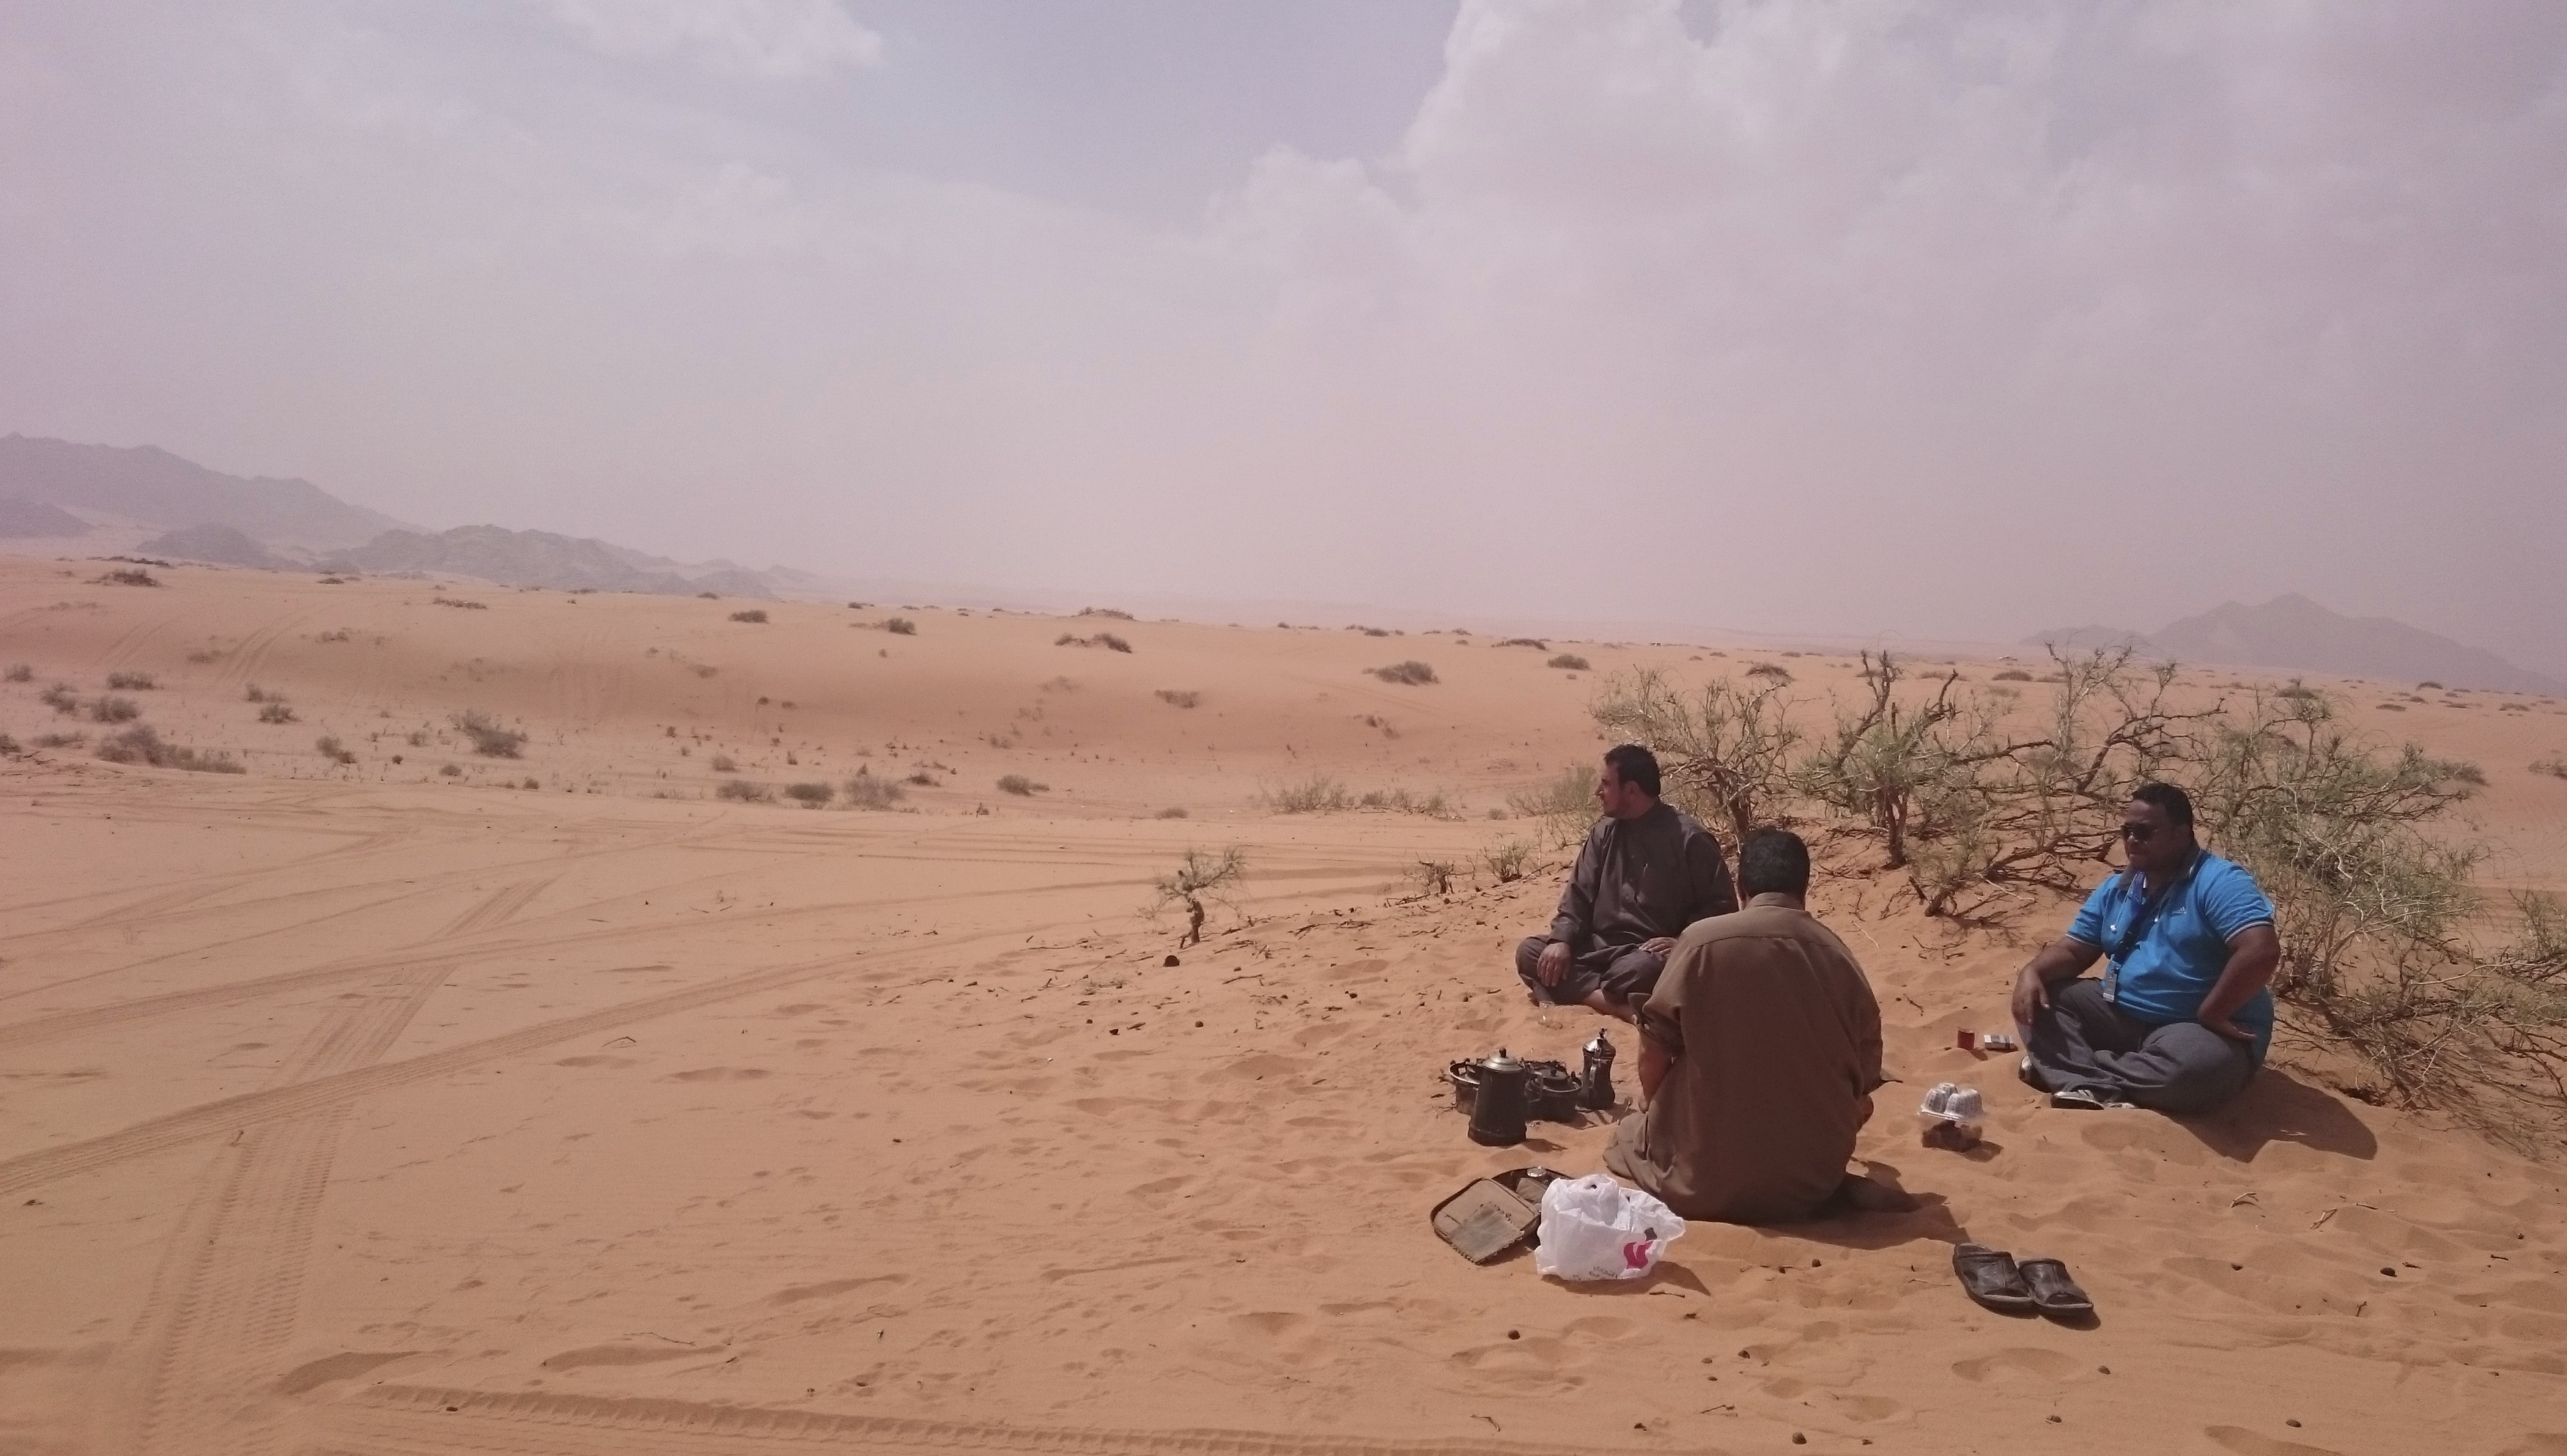 Tea and coffee in the desert at the Ha'il Rally